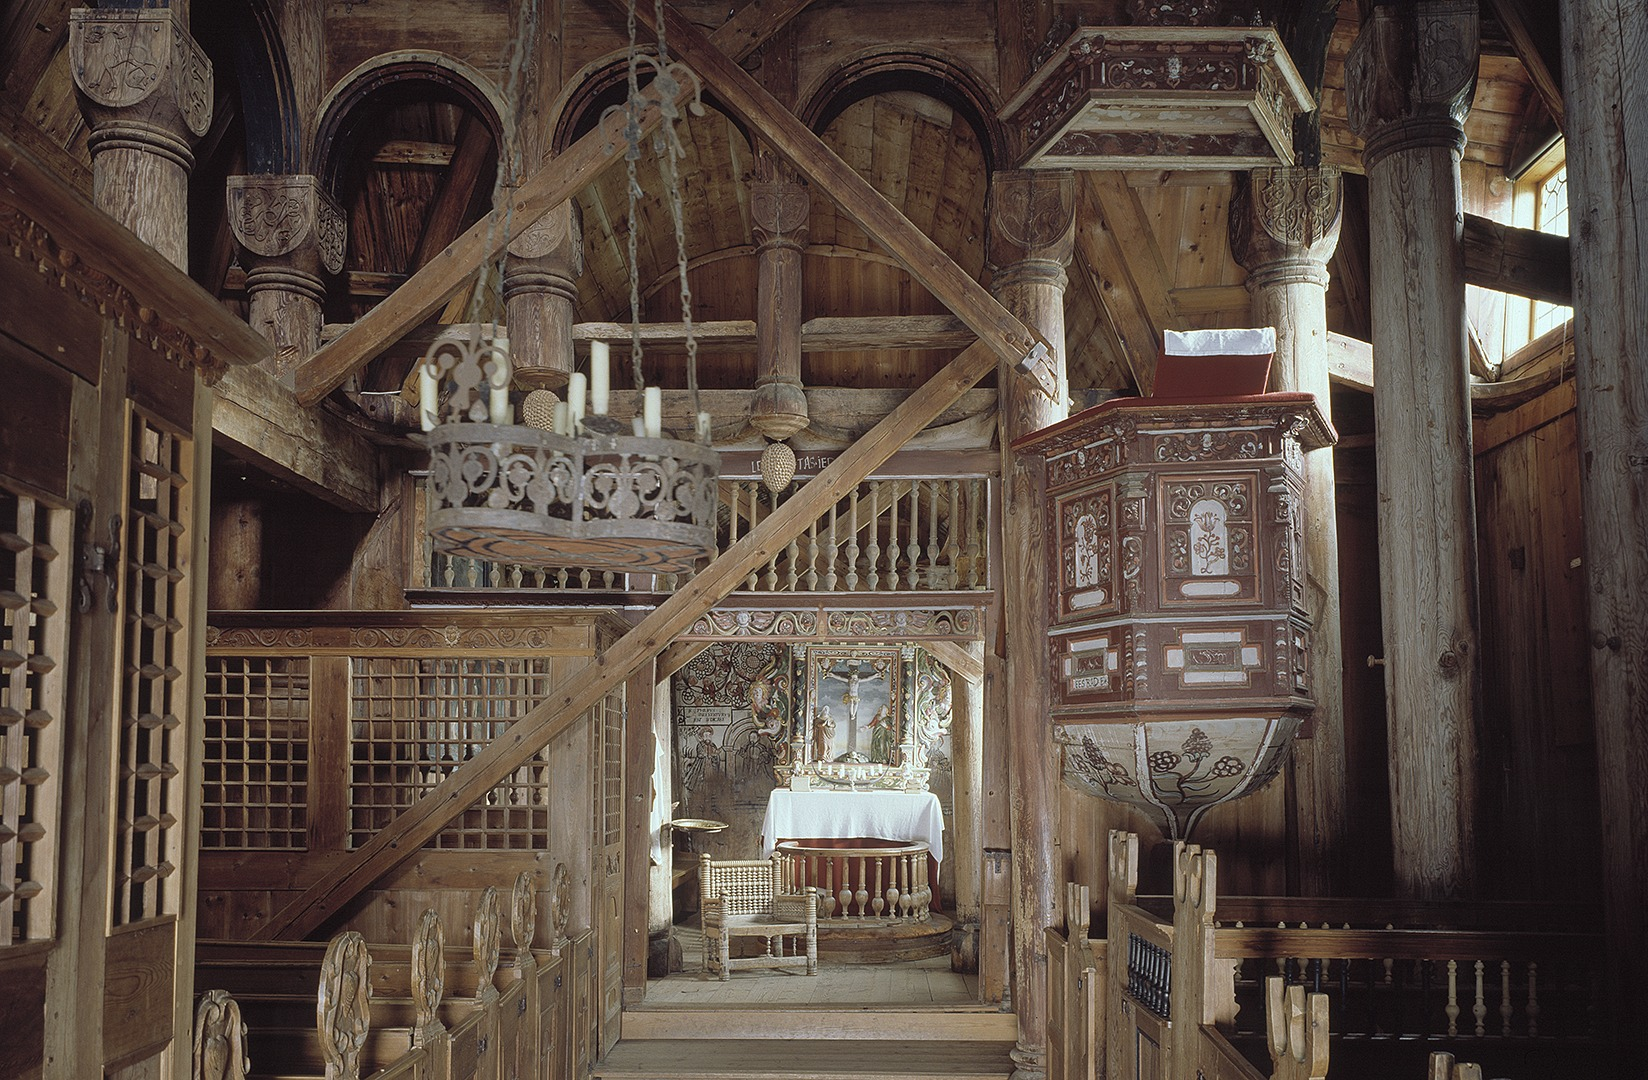 Picture of the interior of Urnes Stave Church. Photo by Jiri Havran, the Directorate for Cultural Heritage